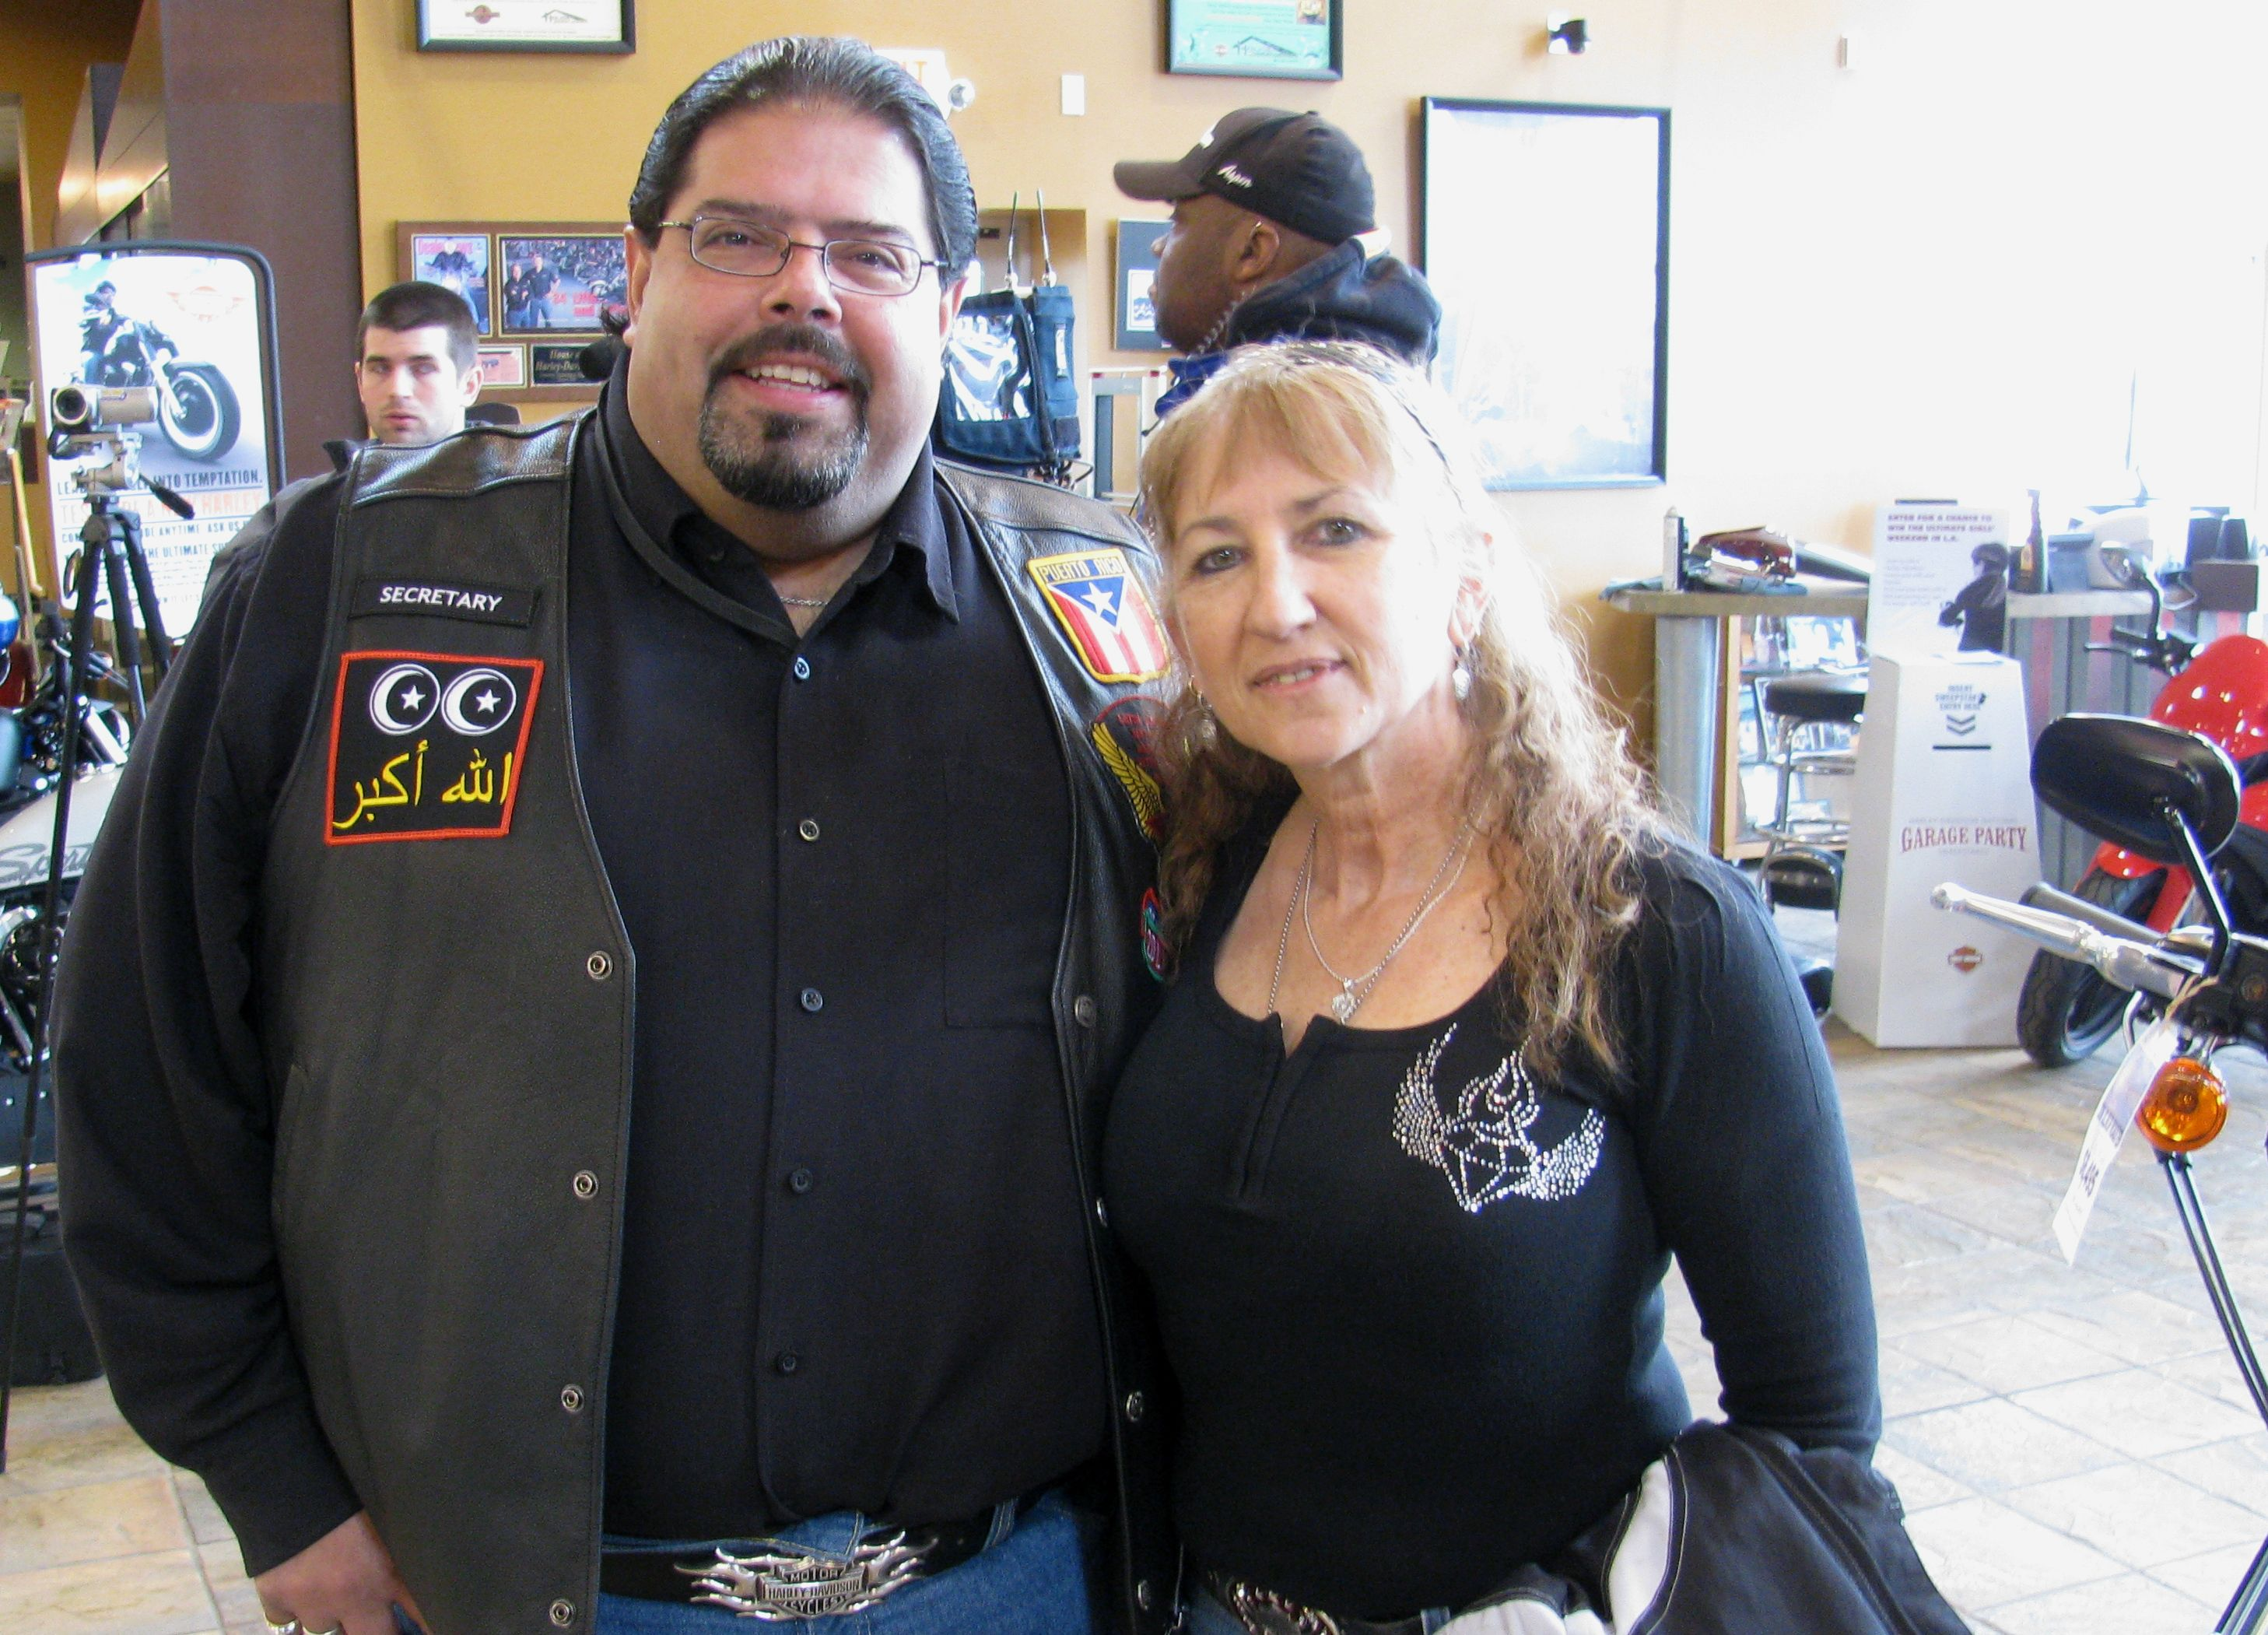 L.A.M.A. member Robert Miranda and Vicki Sanfelipo at the Excutive Ride Press Conference